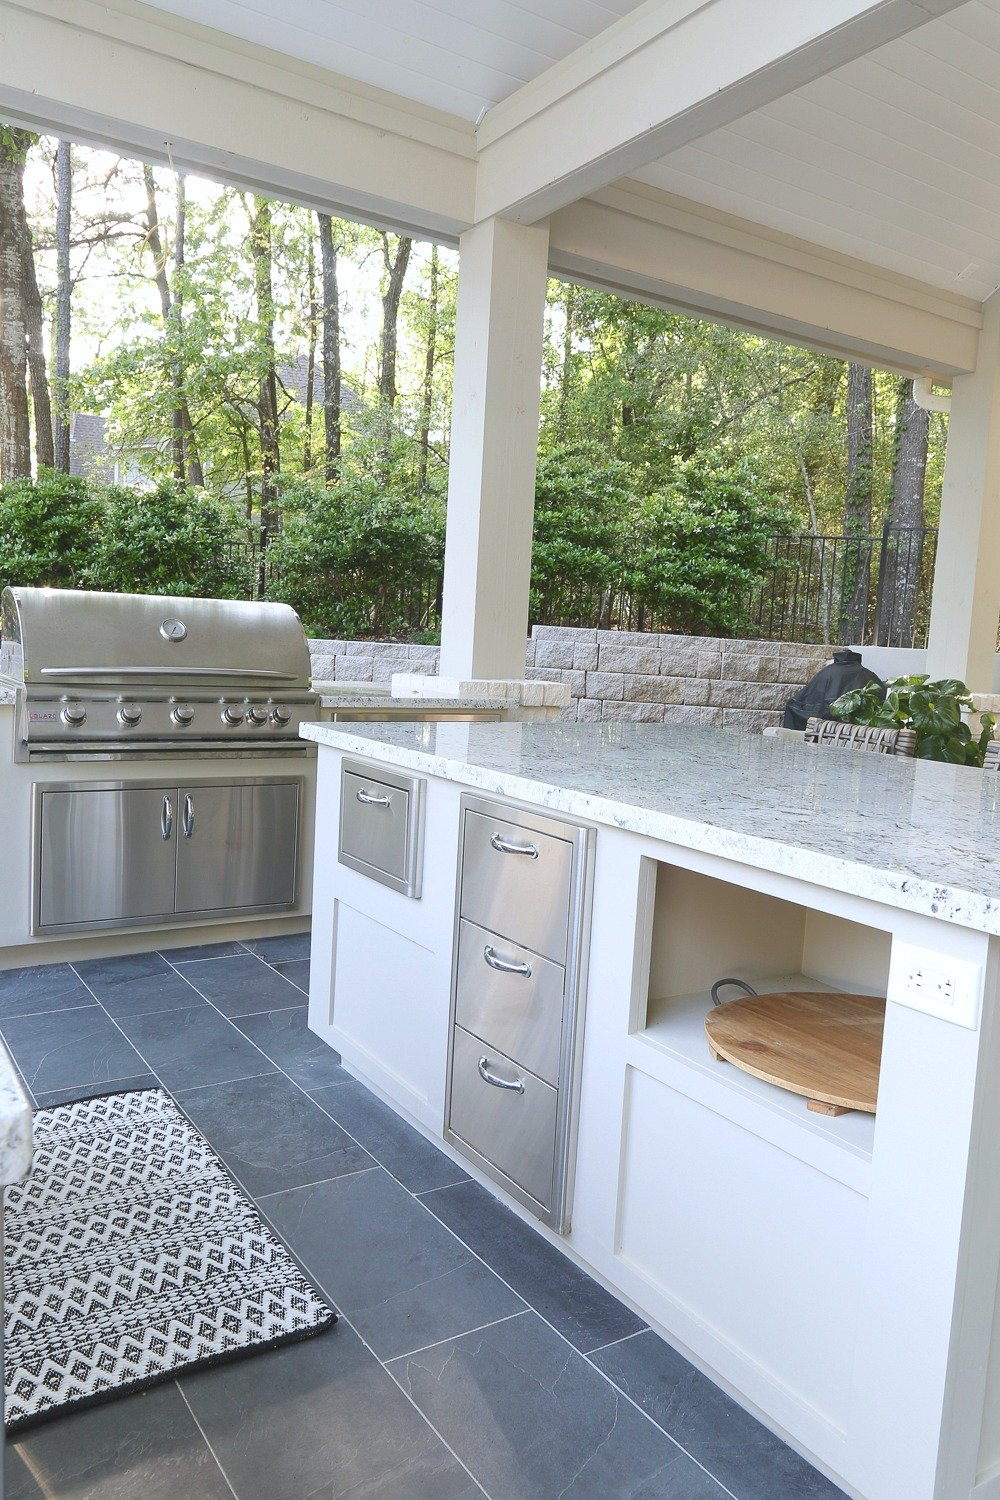 Outdoor kitchen with large grill and stainless drawers